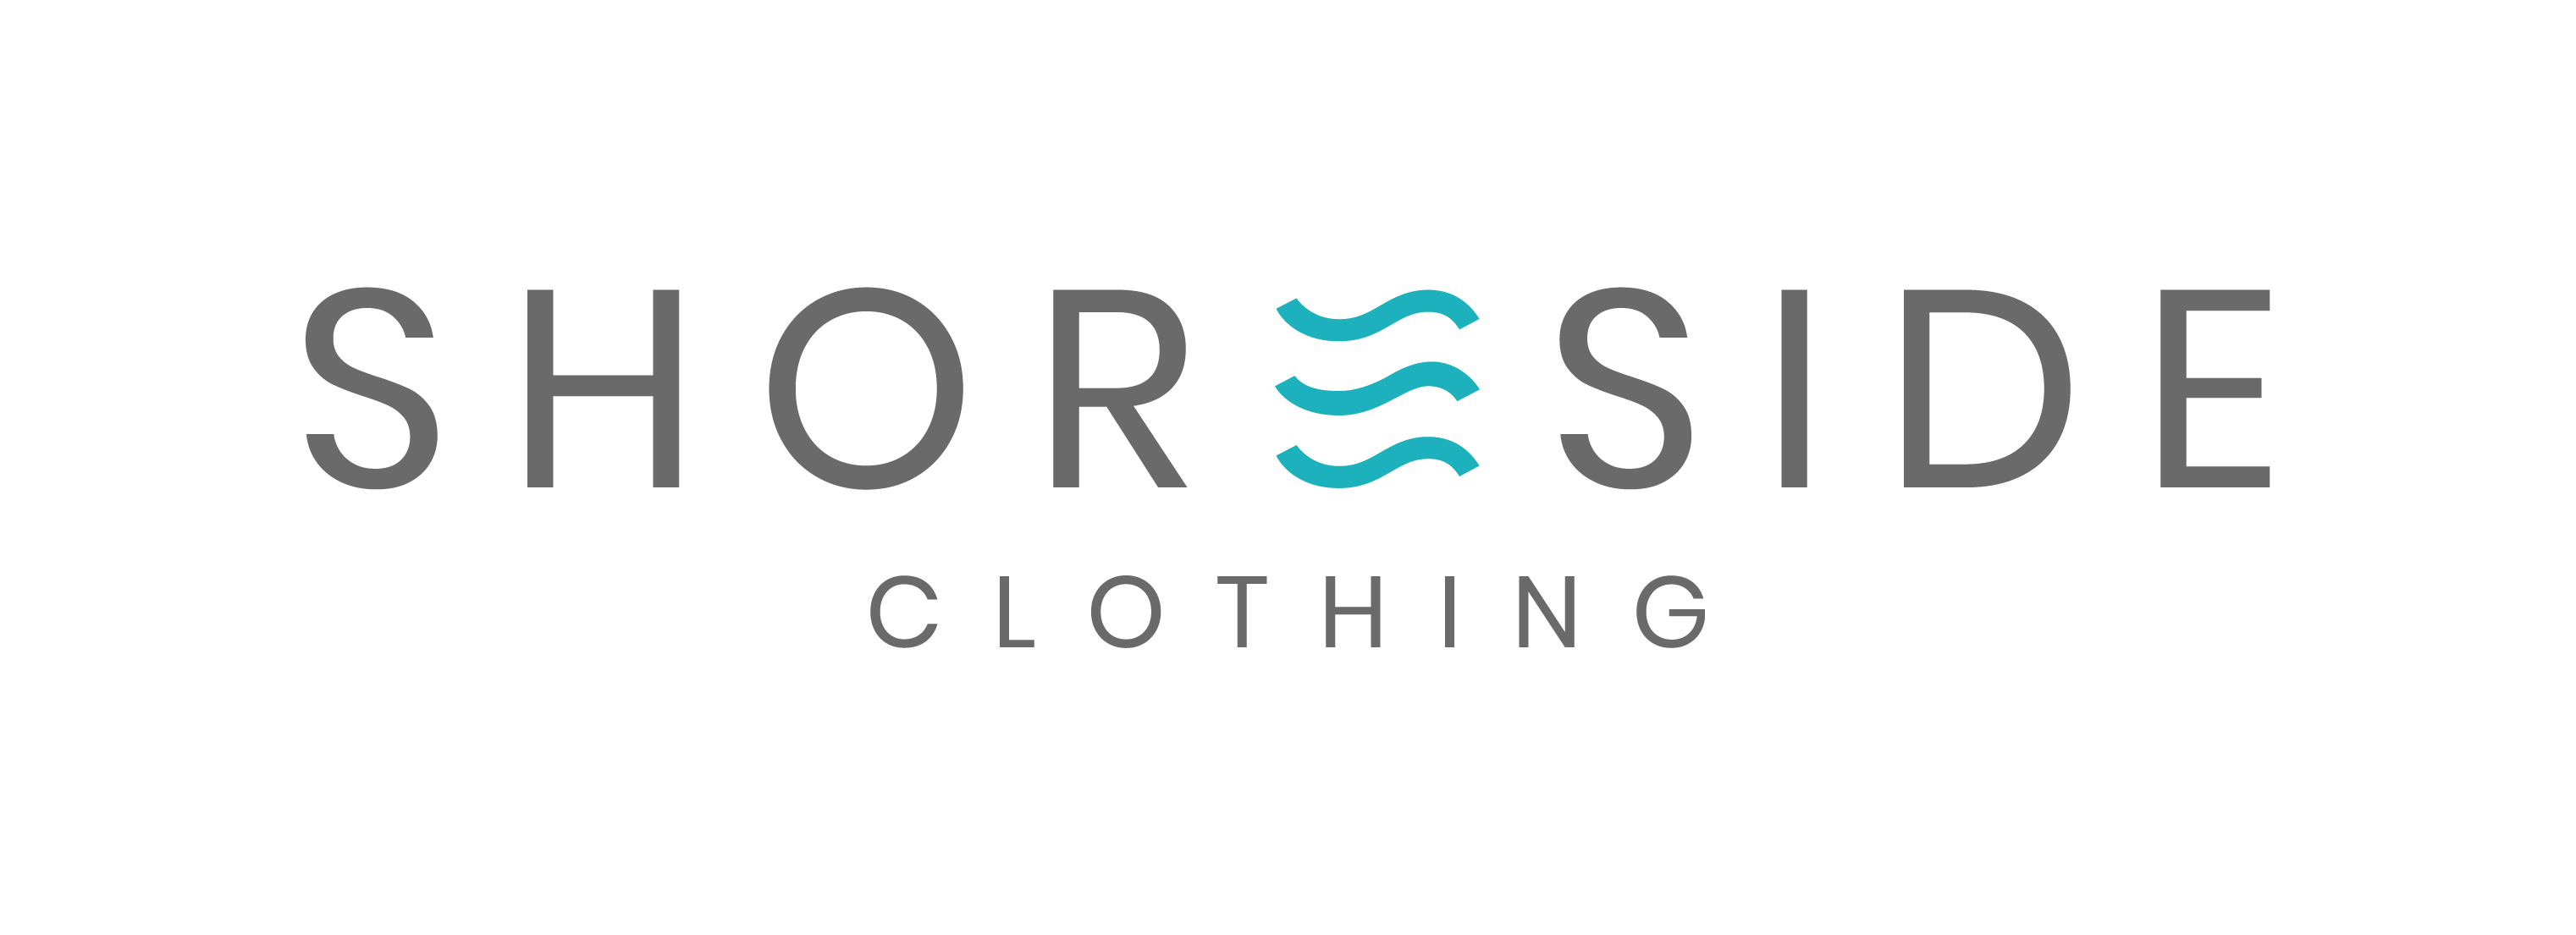 Shoreside Clothing Logo final 01 002